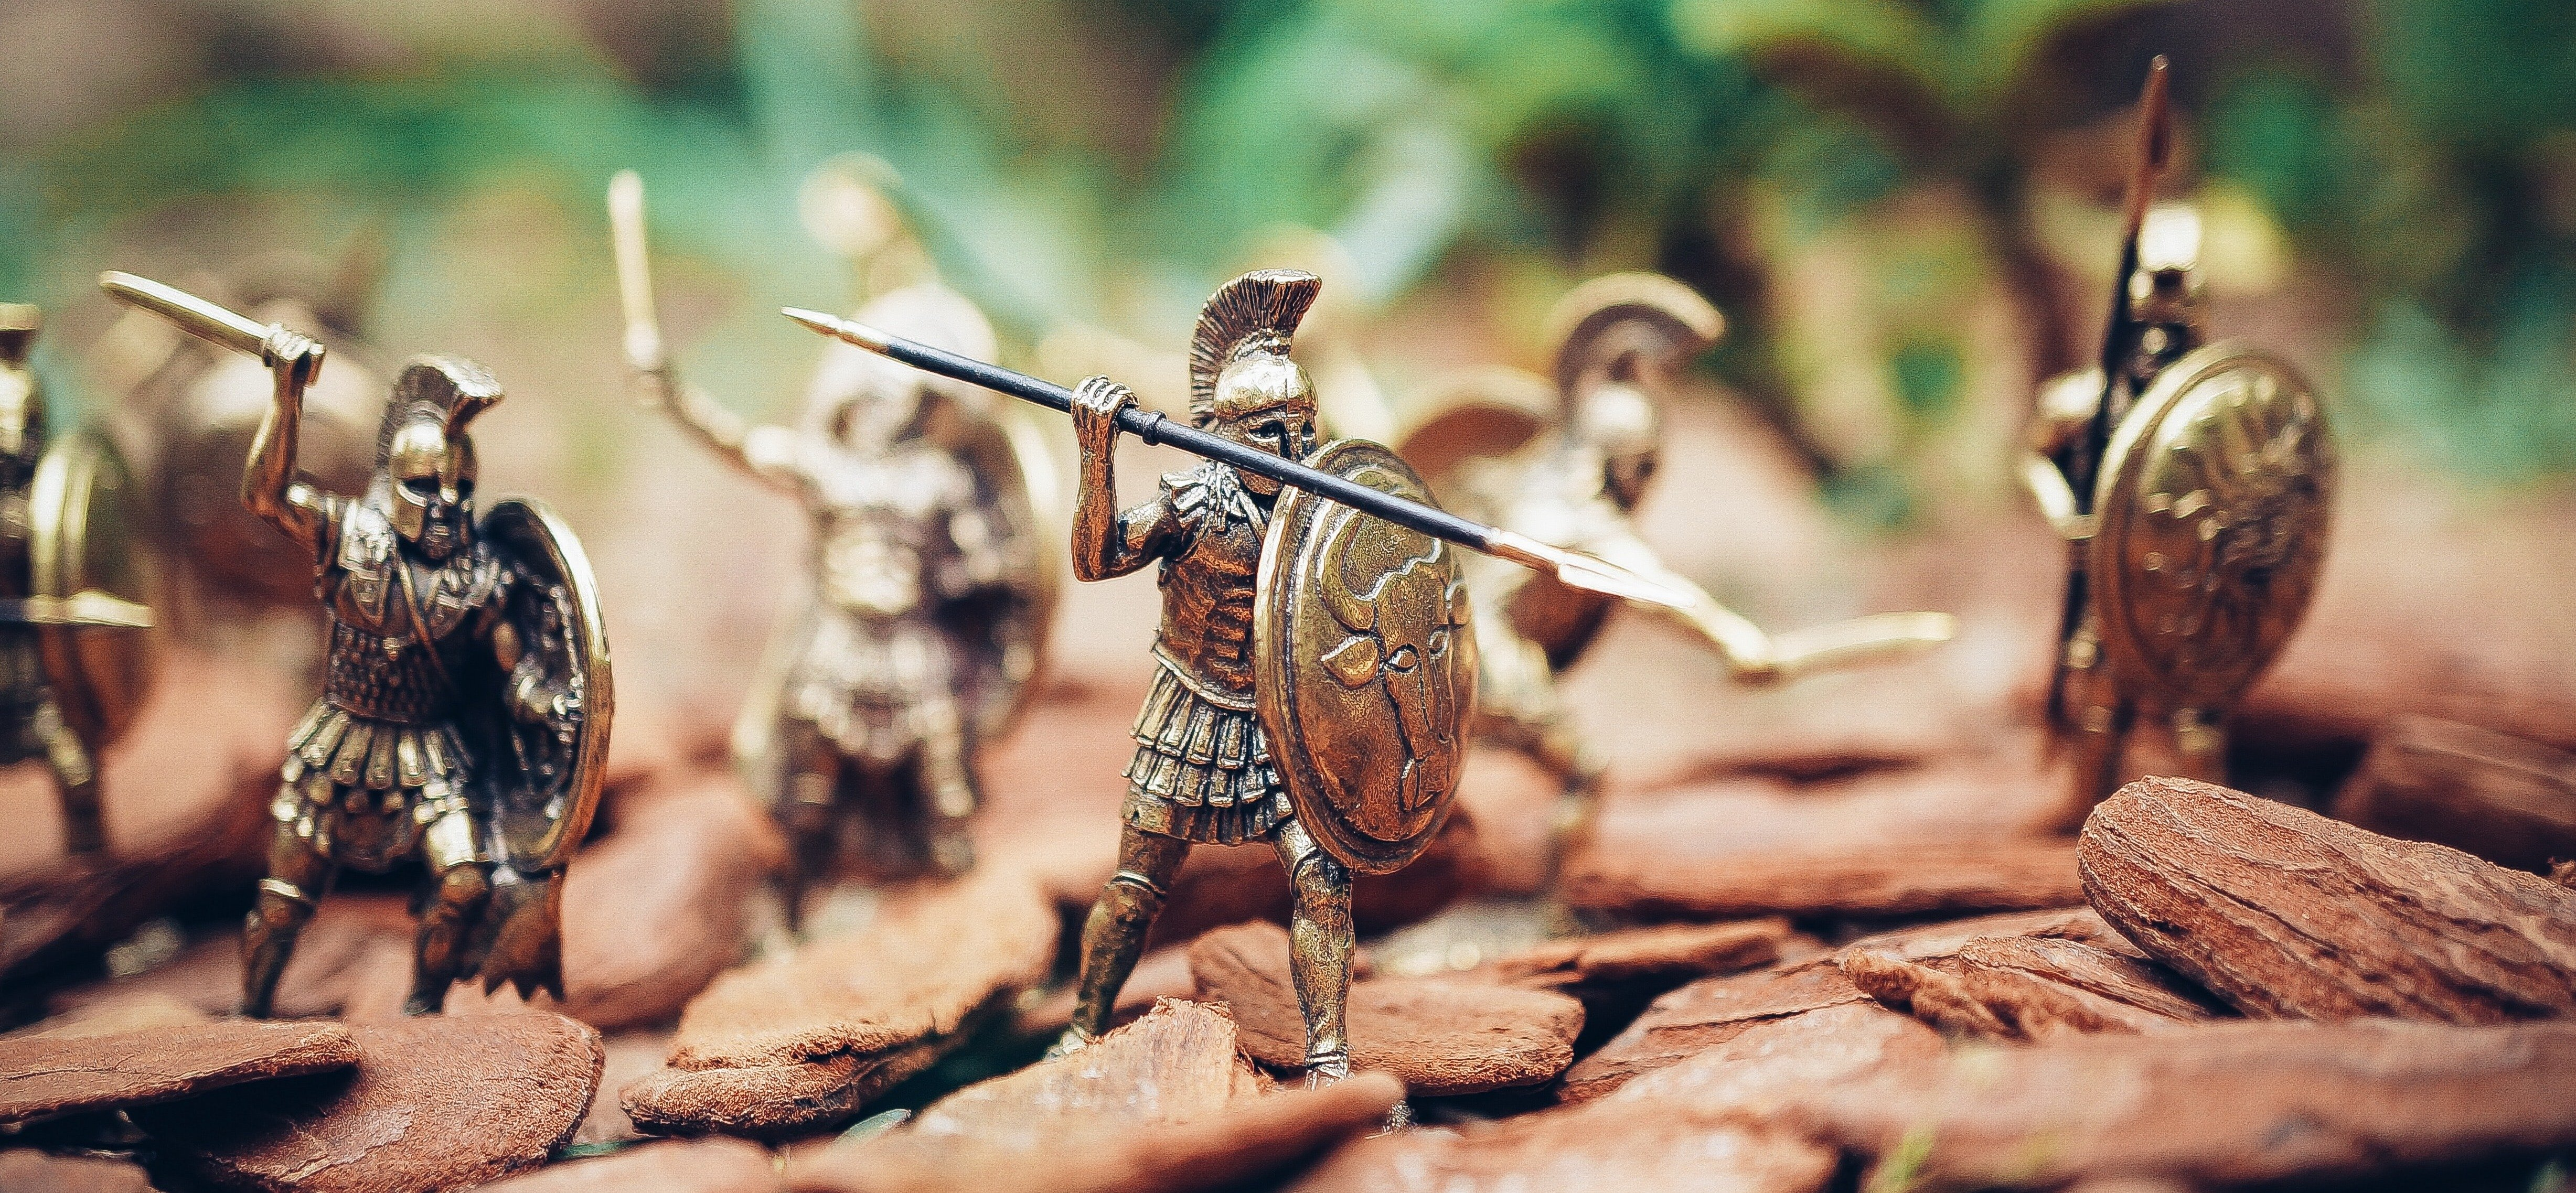 battle-with-toy-warriors